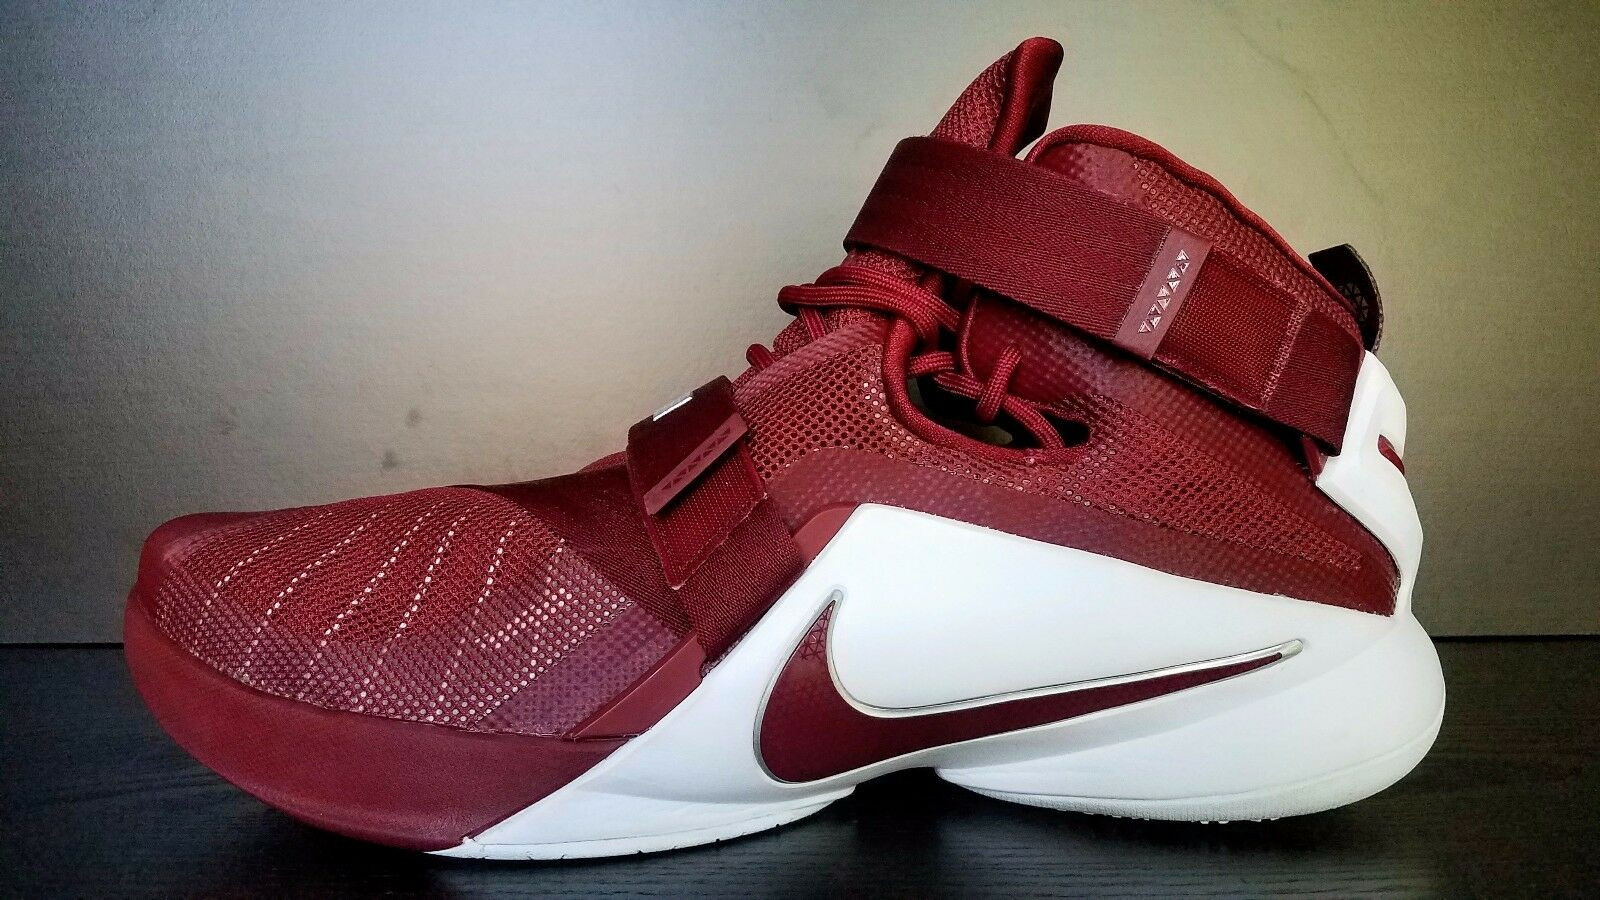 NEW Nike LeBron Soldier Mens 2015 Size 17.5 Red/White 813264-663 NBA Cavs Land